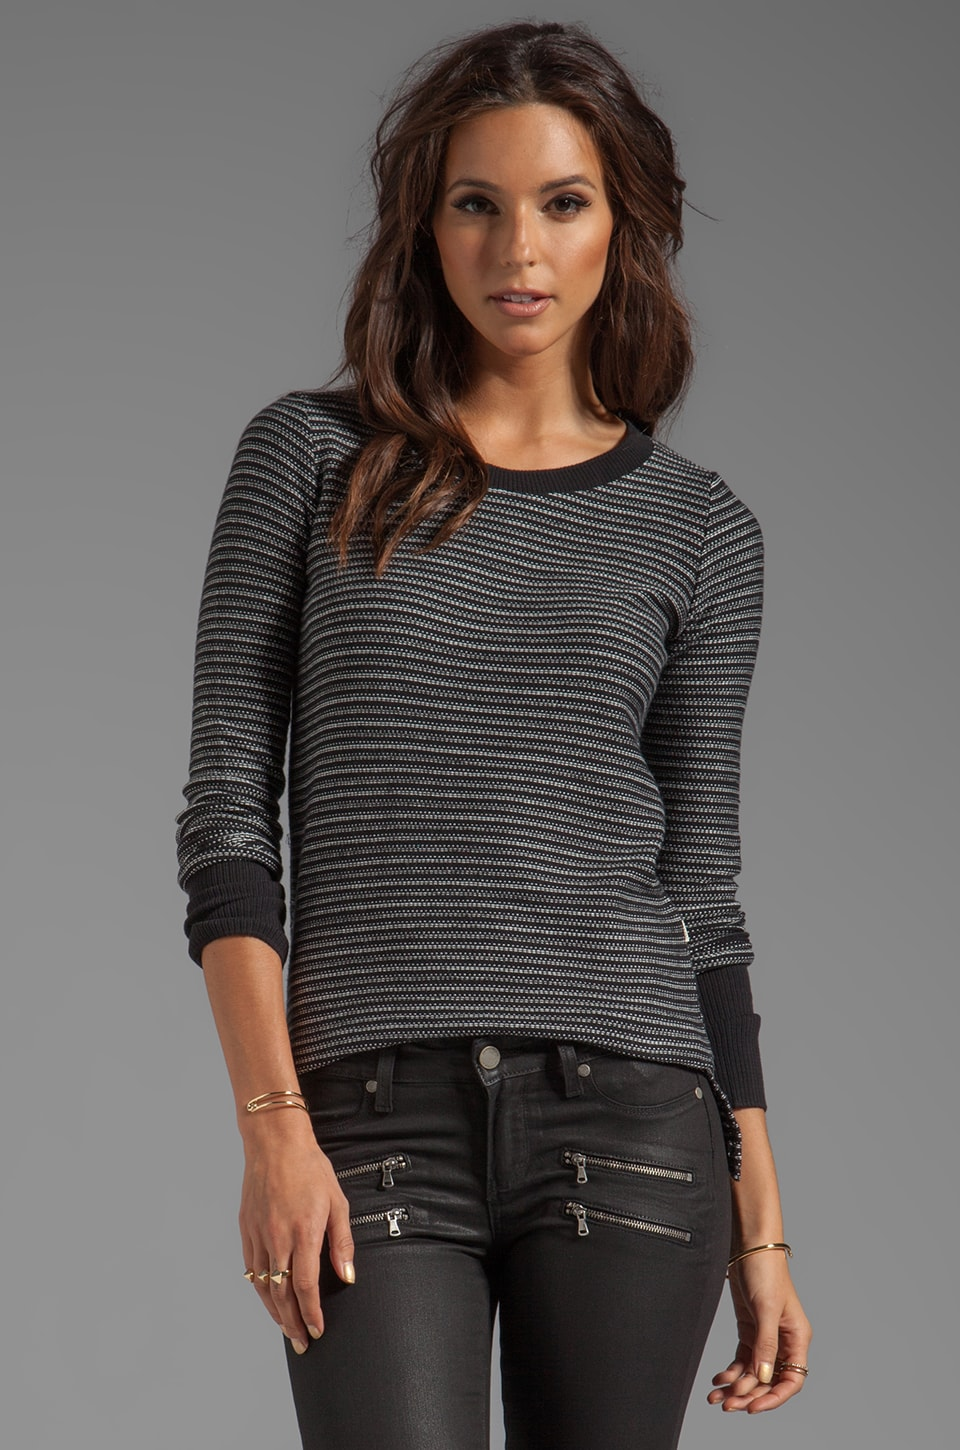 Obey Distant Shore Sweater in Black